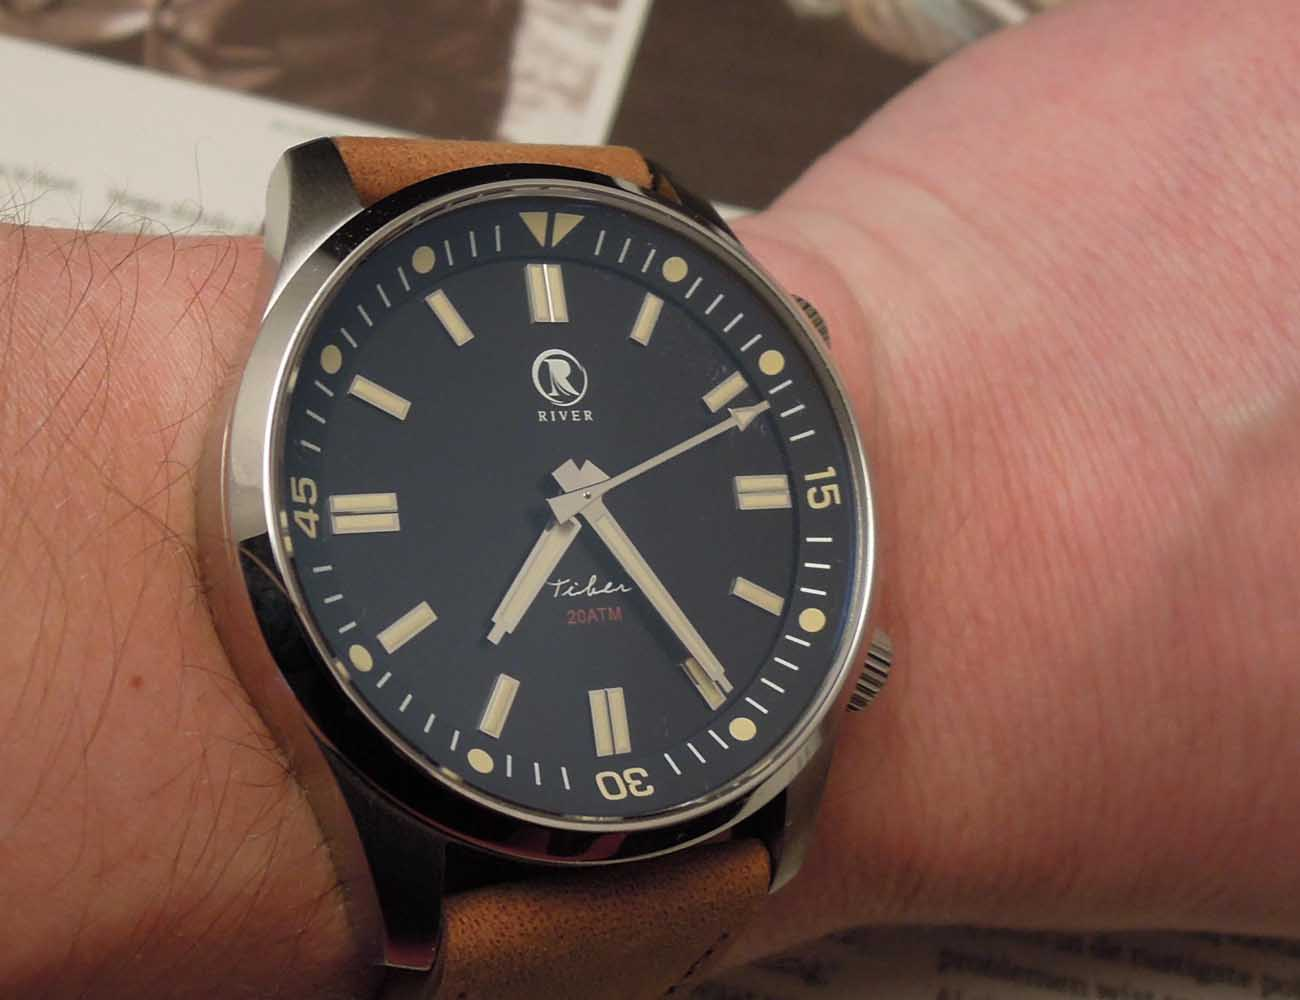 Introducing The River Watch Company Tiber Diver